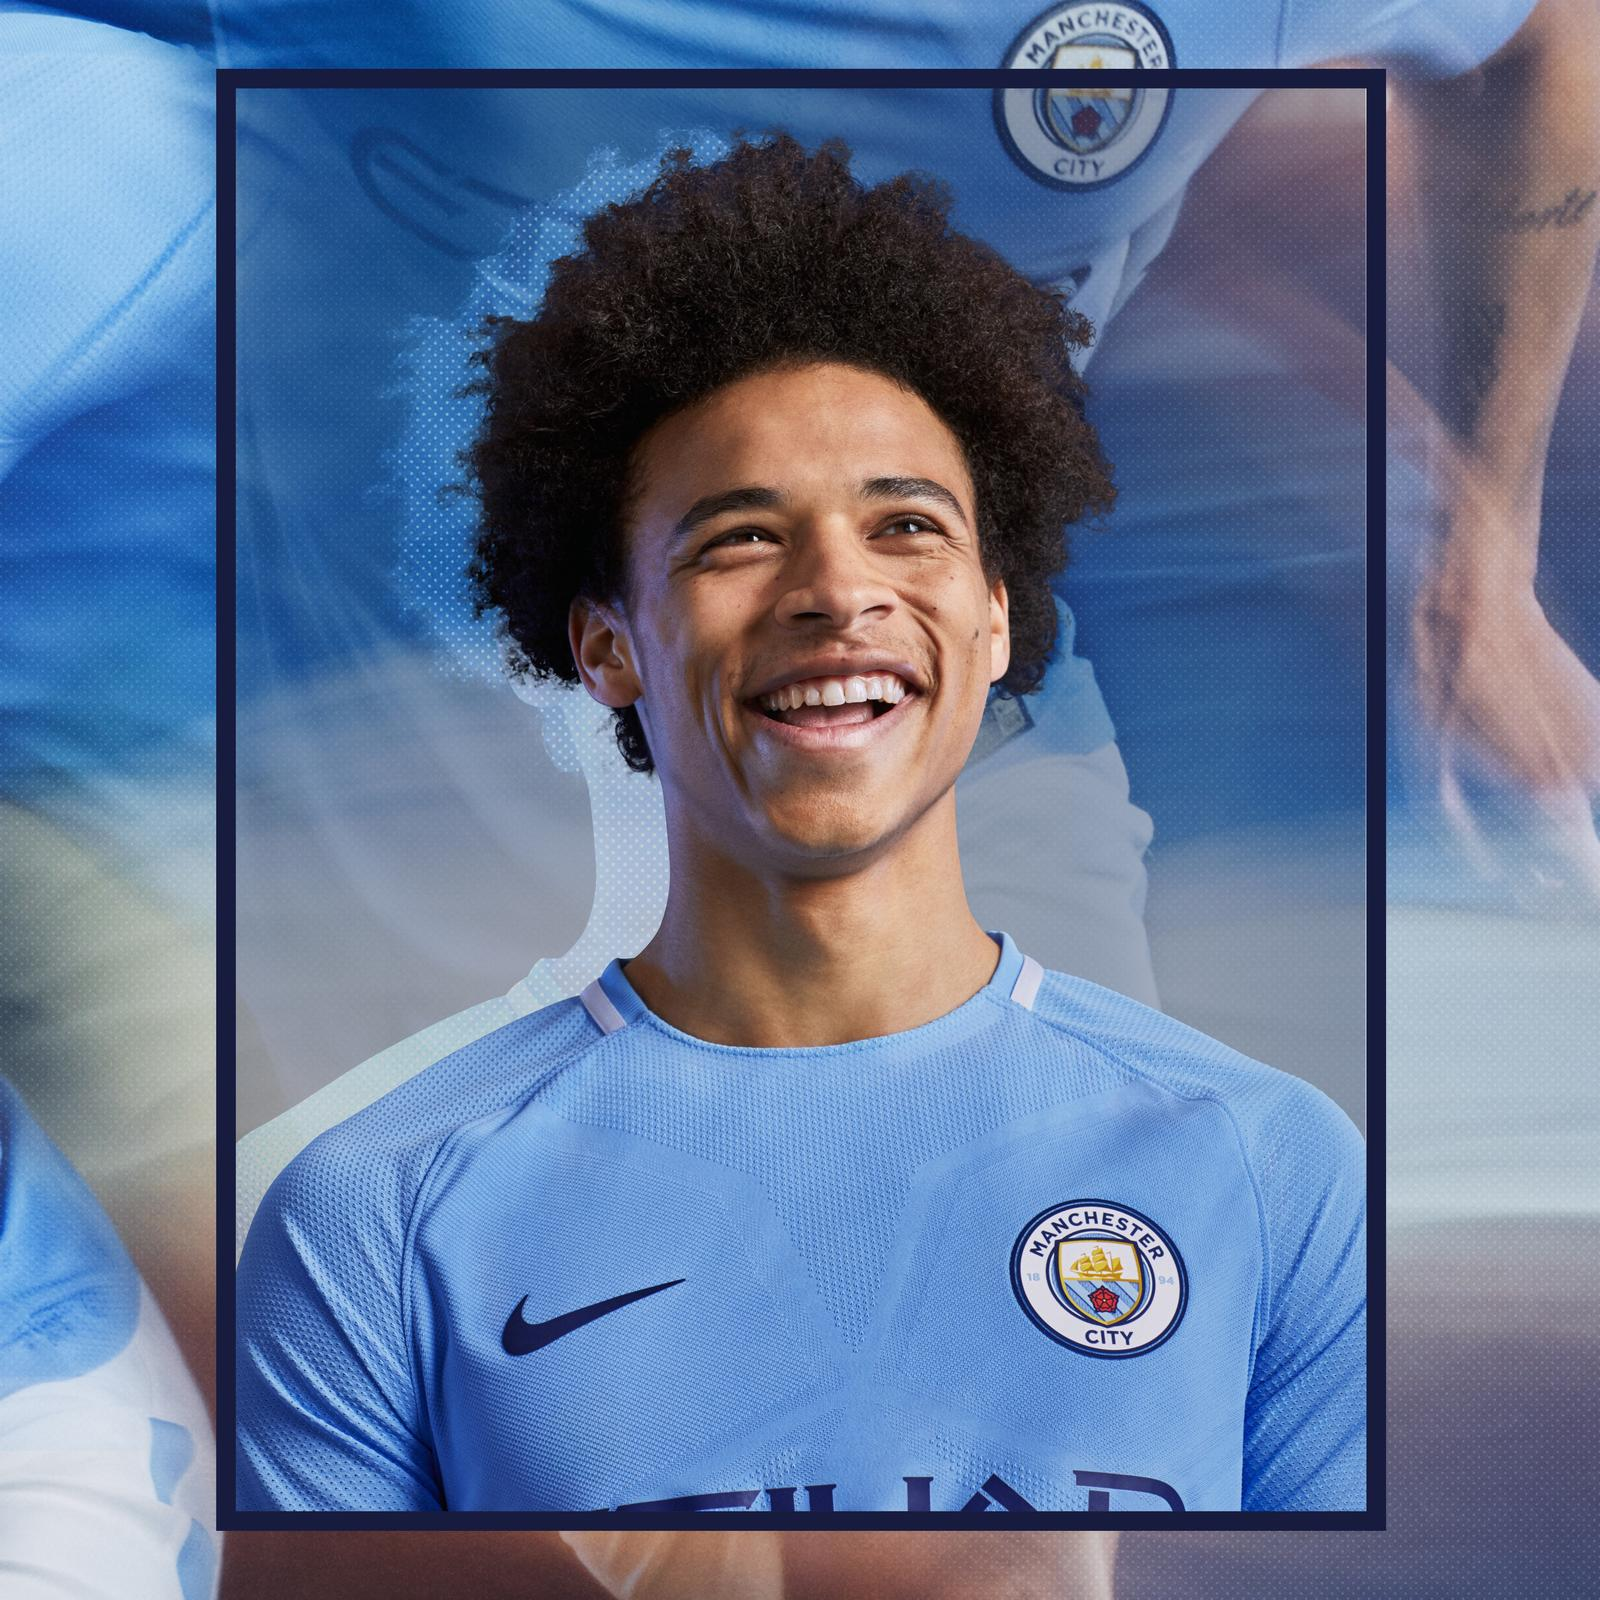 50 years on nike reinvents a classic for manchester city